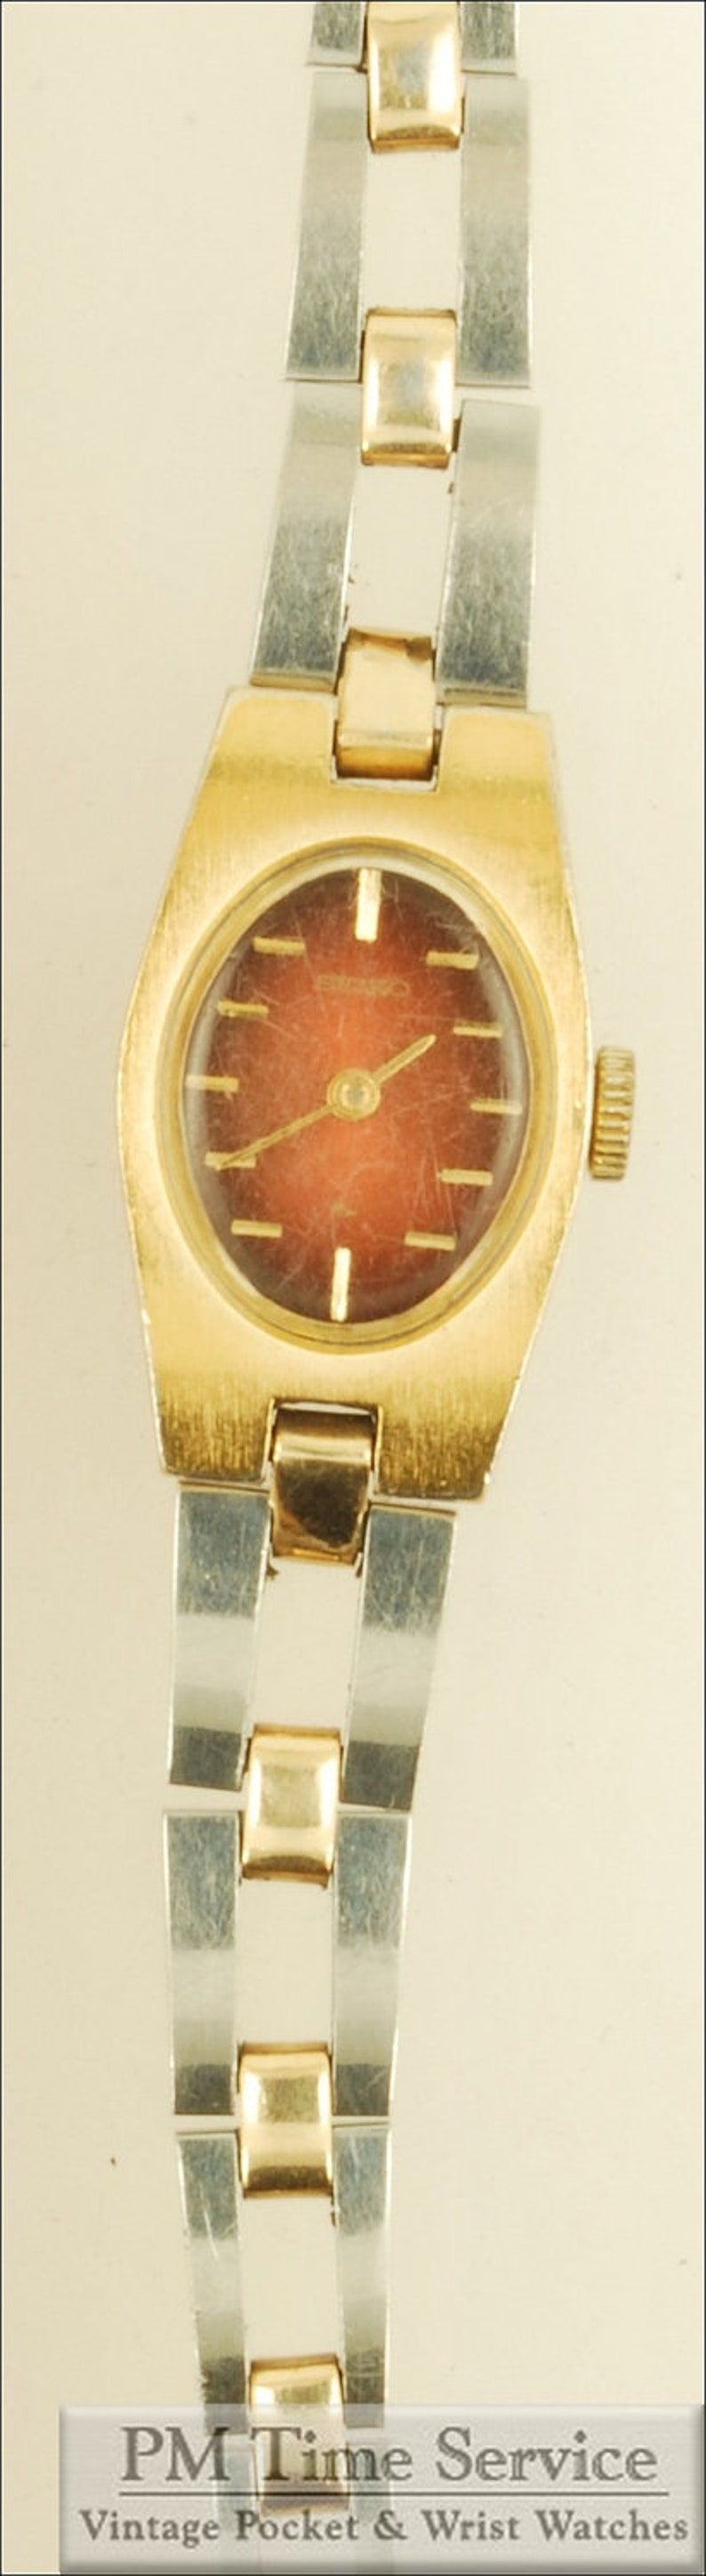 Seiko vintage ladies' wrist watch 17 jewels gold-toned & image 0